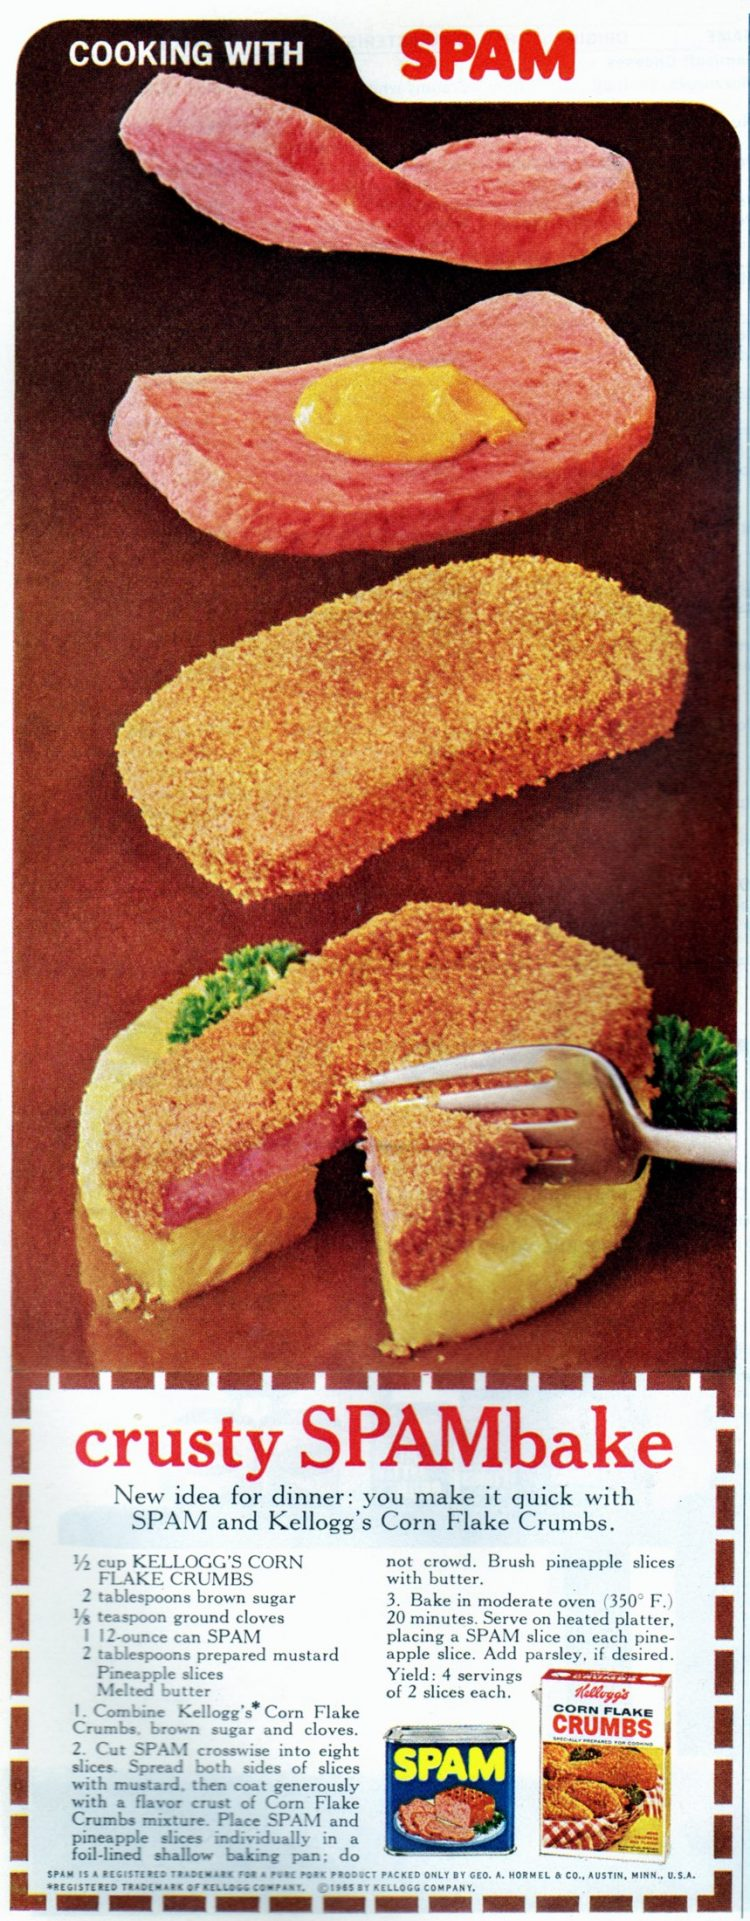 Crusty SPAMbake retro recipe from 1968 (2)